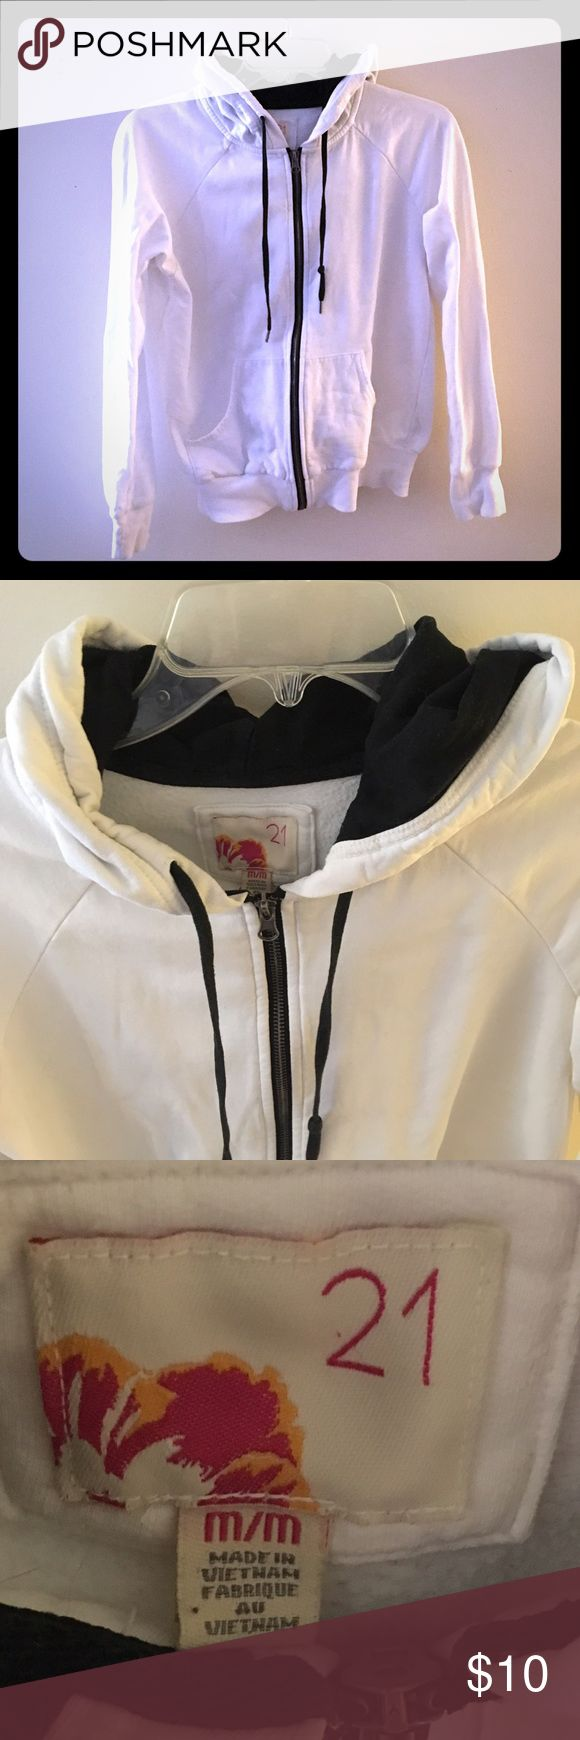 White Hoodie - Forever 21 Comfy white with white hoodie w/ black zipper, draw string and interior of hoodie. from Forever 21. Excellent condition Forever 21 Tops Sweatshirts & Hoodies